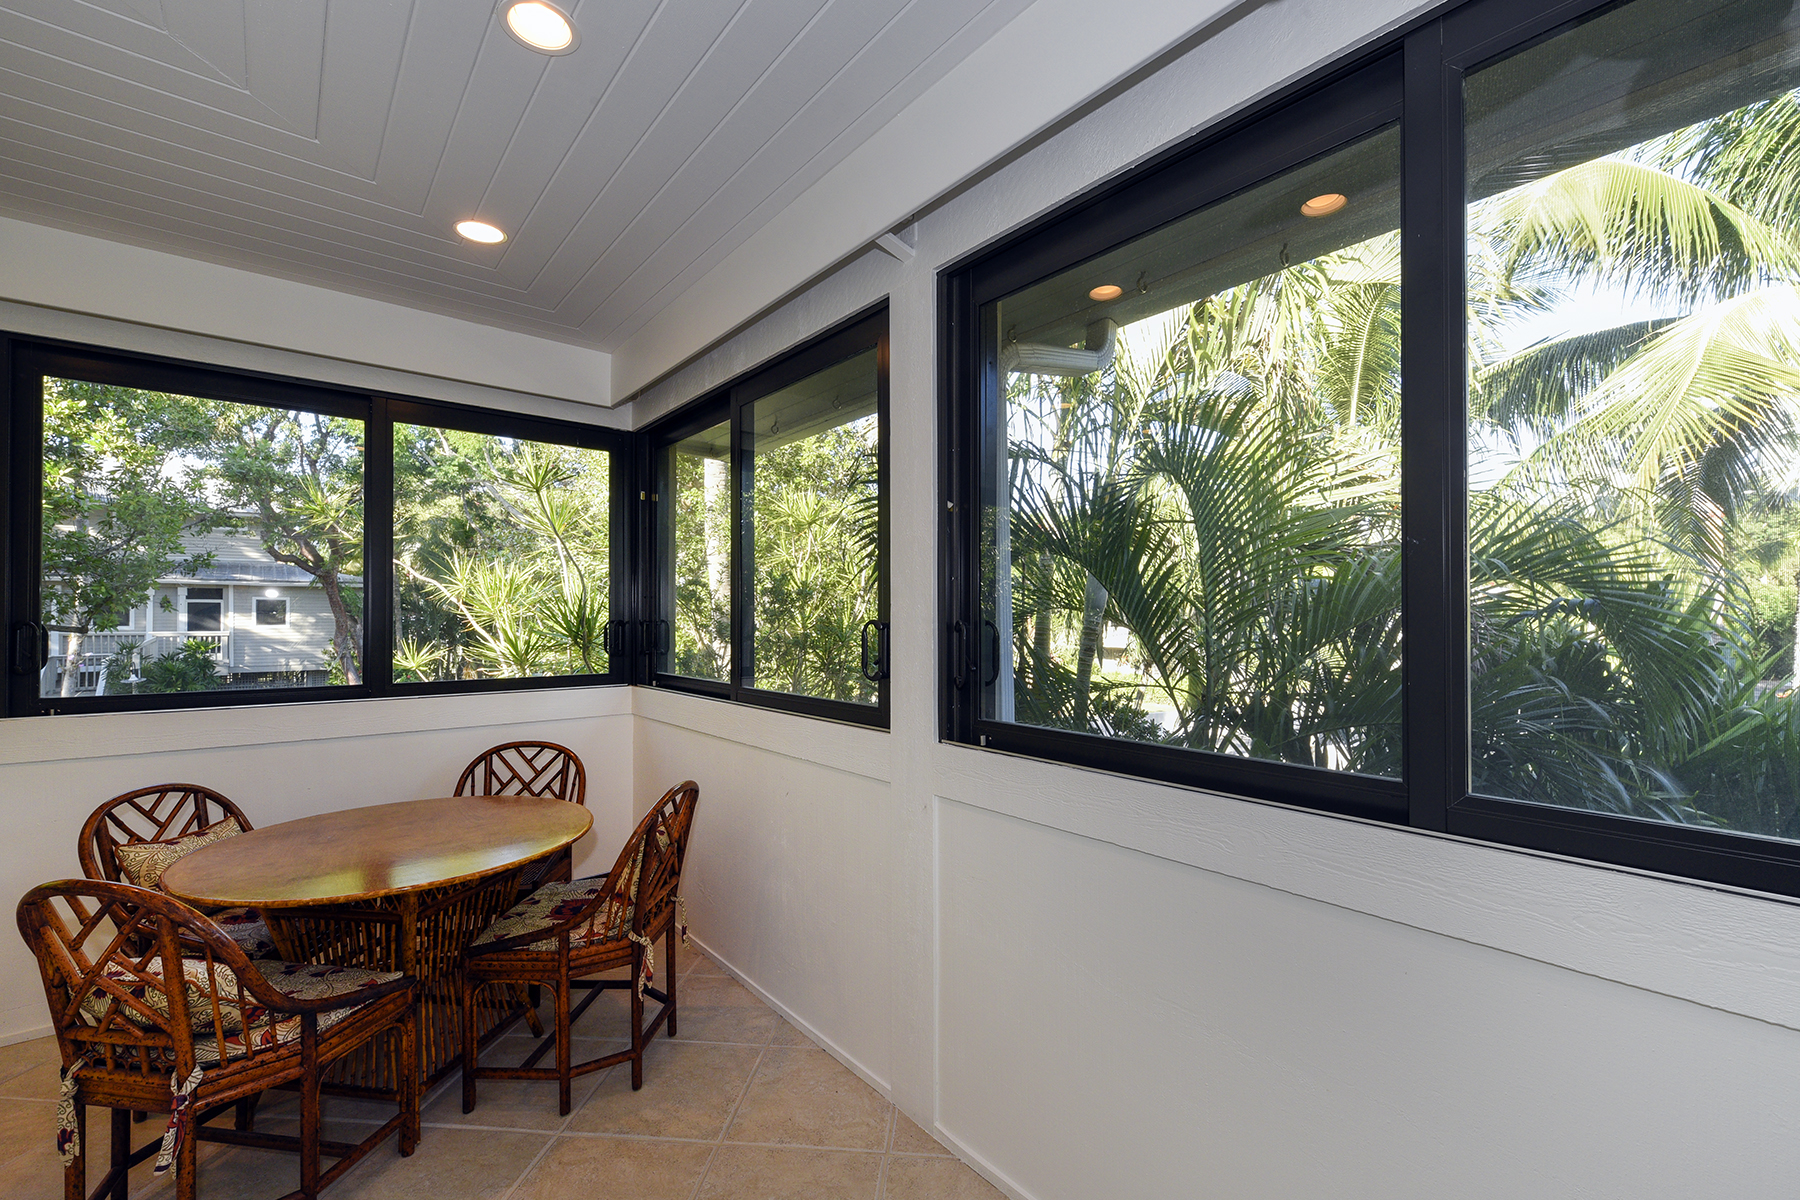 Additional photo for property listing at Key Largo Anglers Club - Beautifully Renovated Cottage 18 South Island Drive Key Largo, Florida 33037 Amerika Birleşik Devletleri